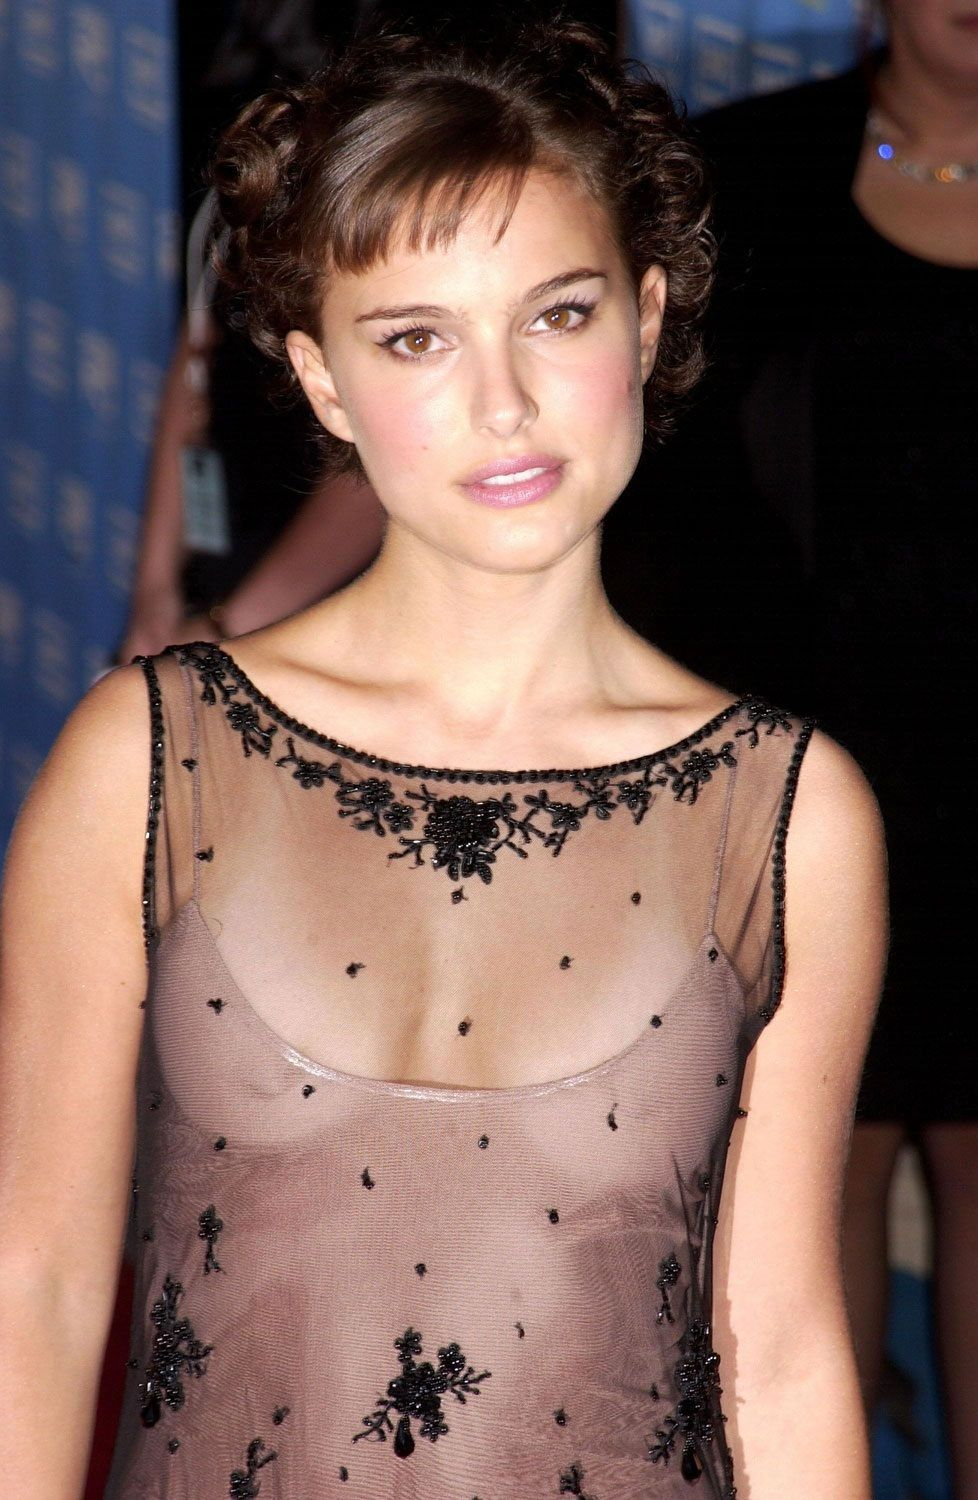 Natalie Portman Hot Pictures